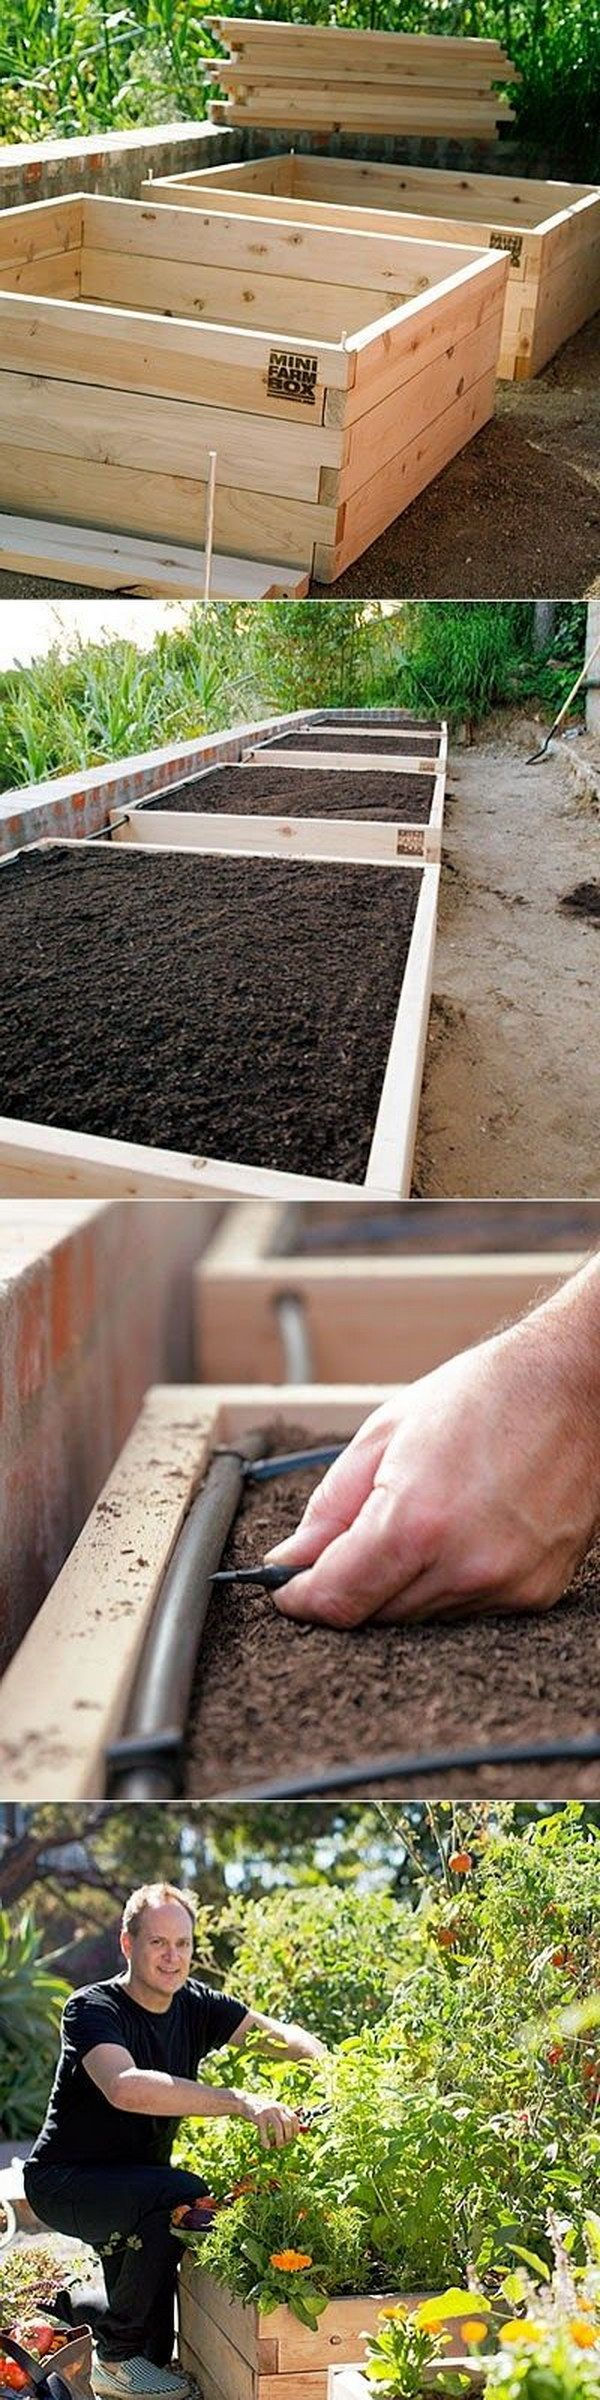 Best of Home and Garden: 30+ Raised Garden Bed Ideas